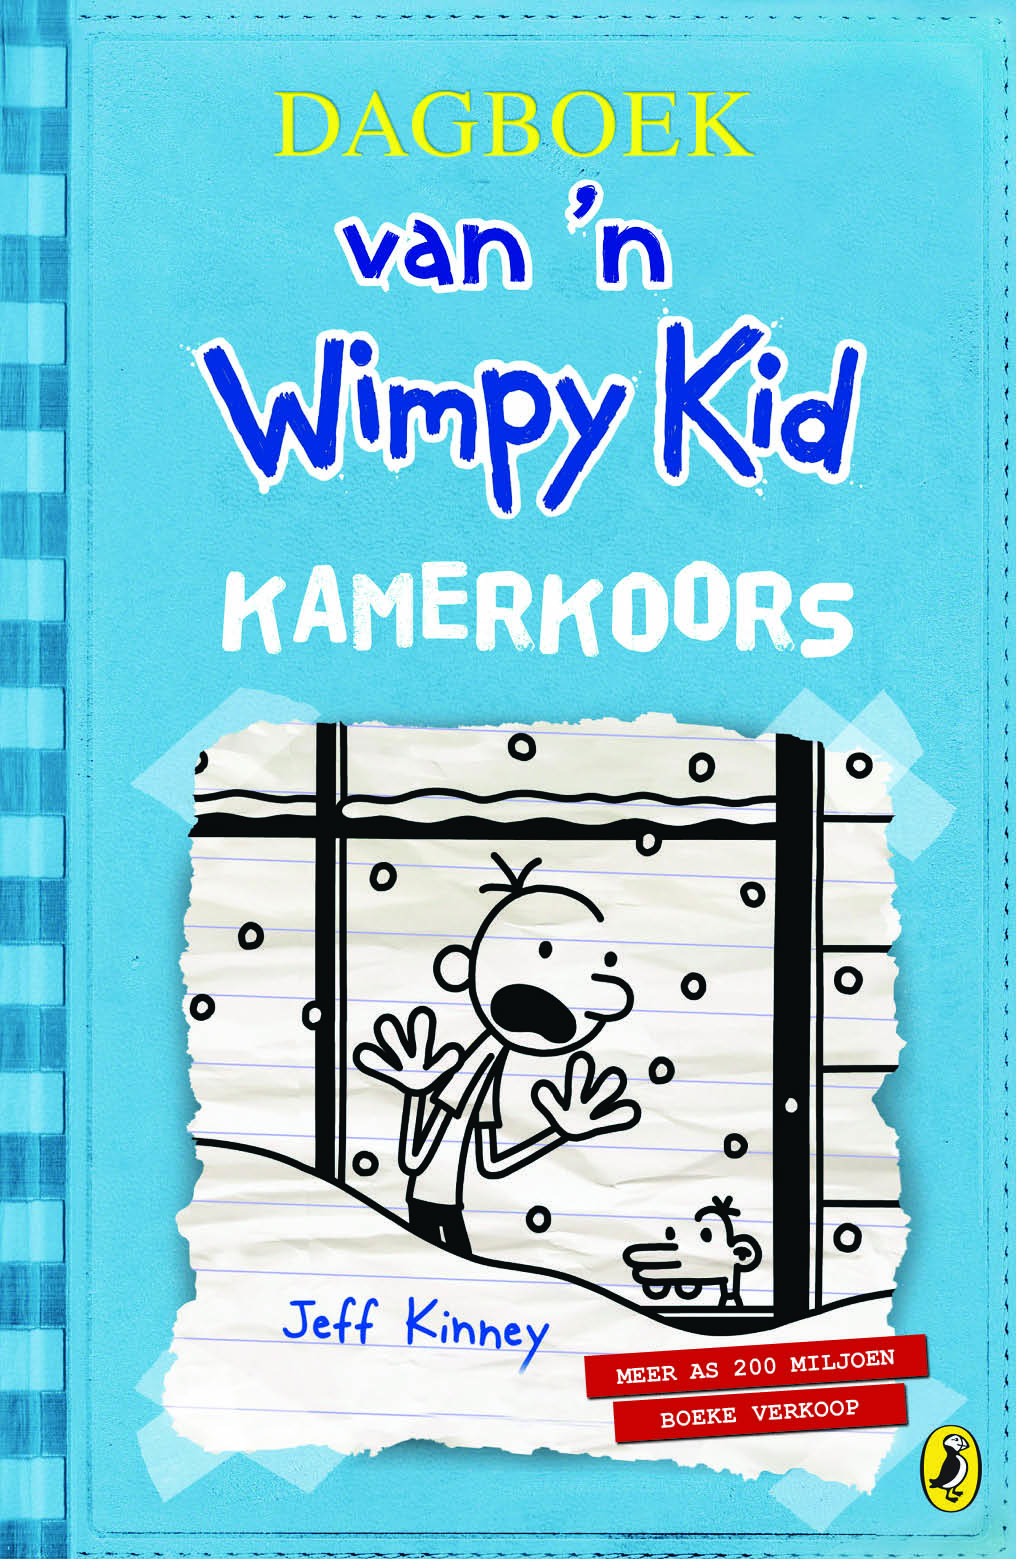 Picture of Dagboek van 'n Wimpy kid kamerkoors